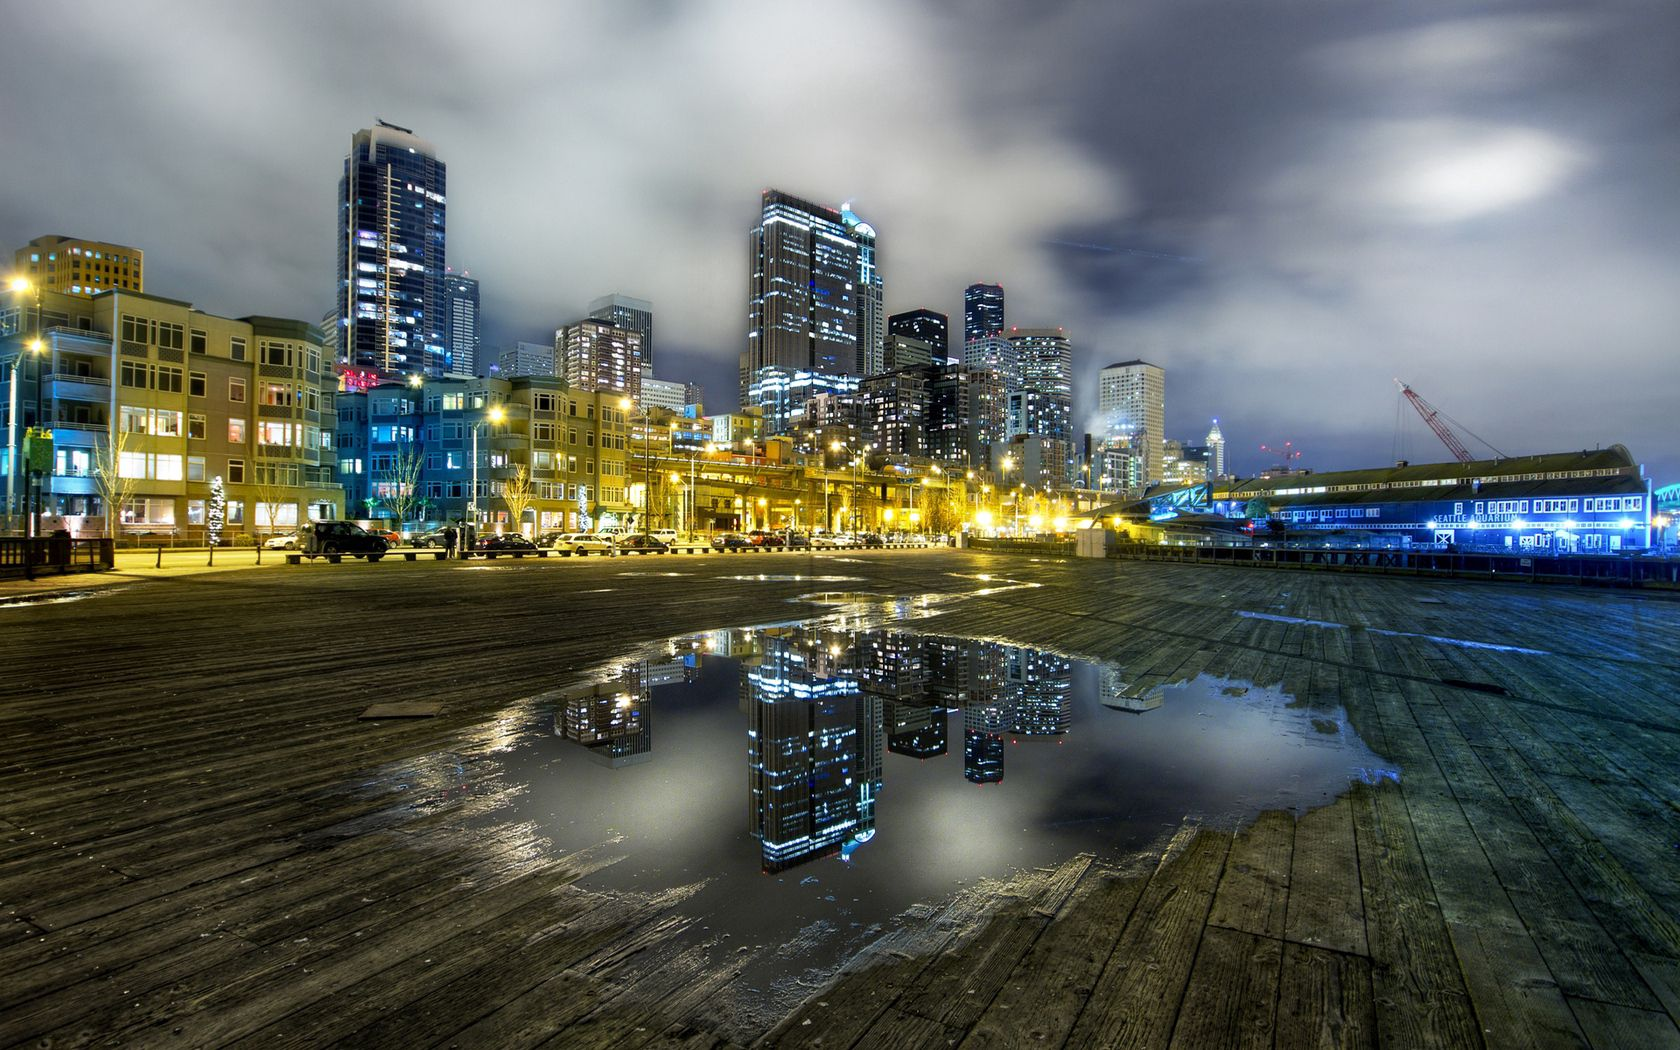 125488 download wallpaper City, Seattle, Usa, United States, Morning, Grey Sky, Grey Skies, Lights, Puddle, Reflection, Planks, Board, Hdr, Cities screensavers and pictures for free